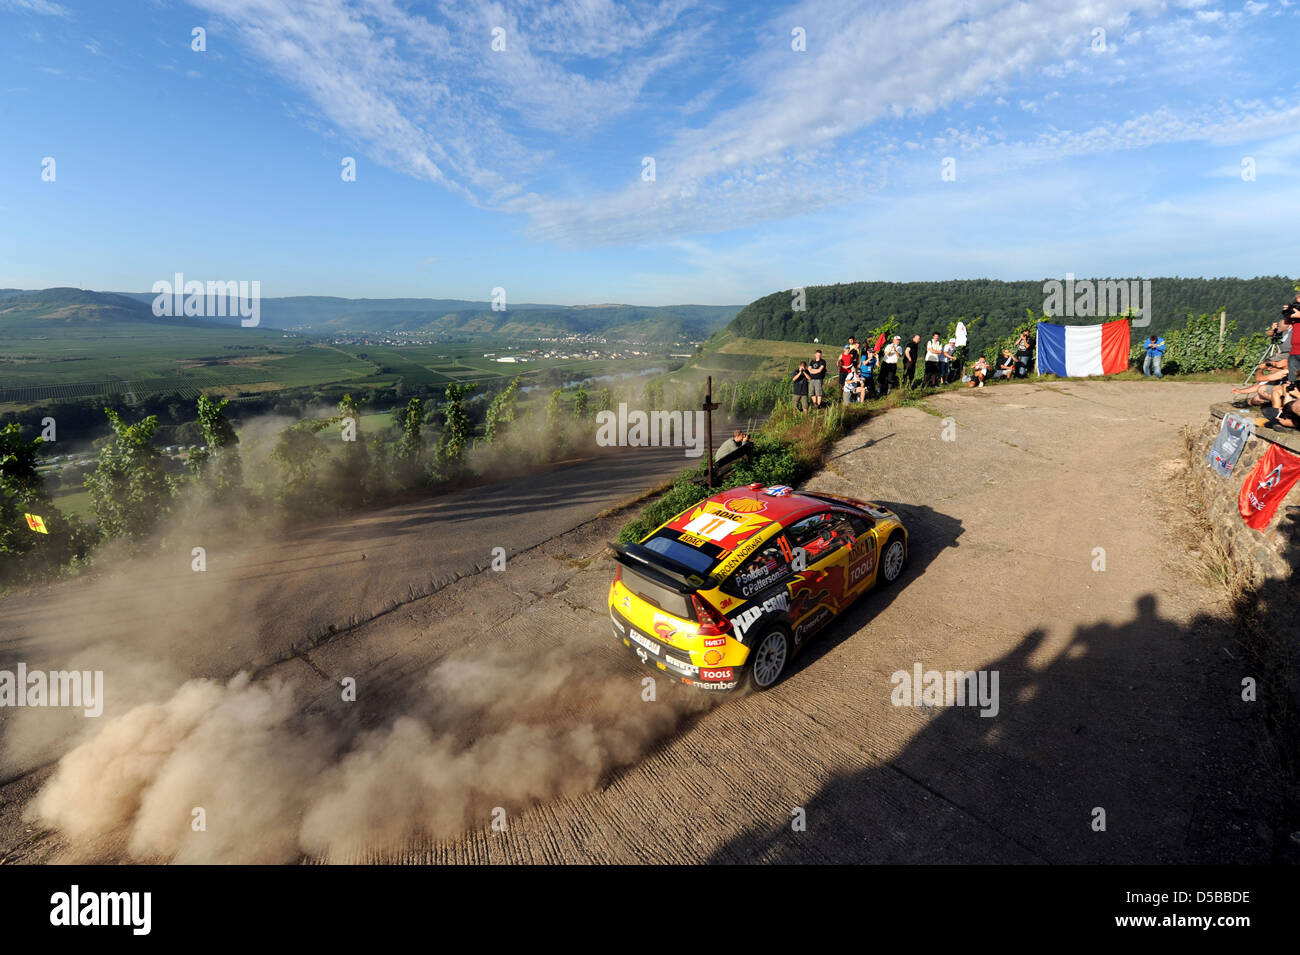 Norwegians Petter Solberg and co-driver Chris Patterson race in their Citroen C4 WRC in the Mosel vineyards during - Stock Image